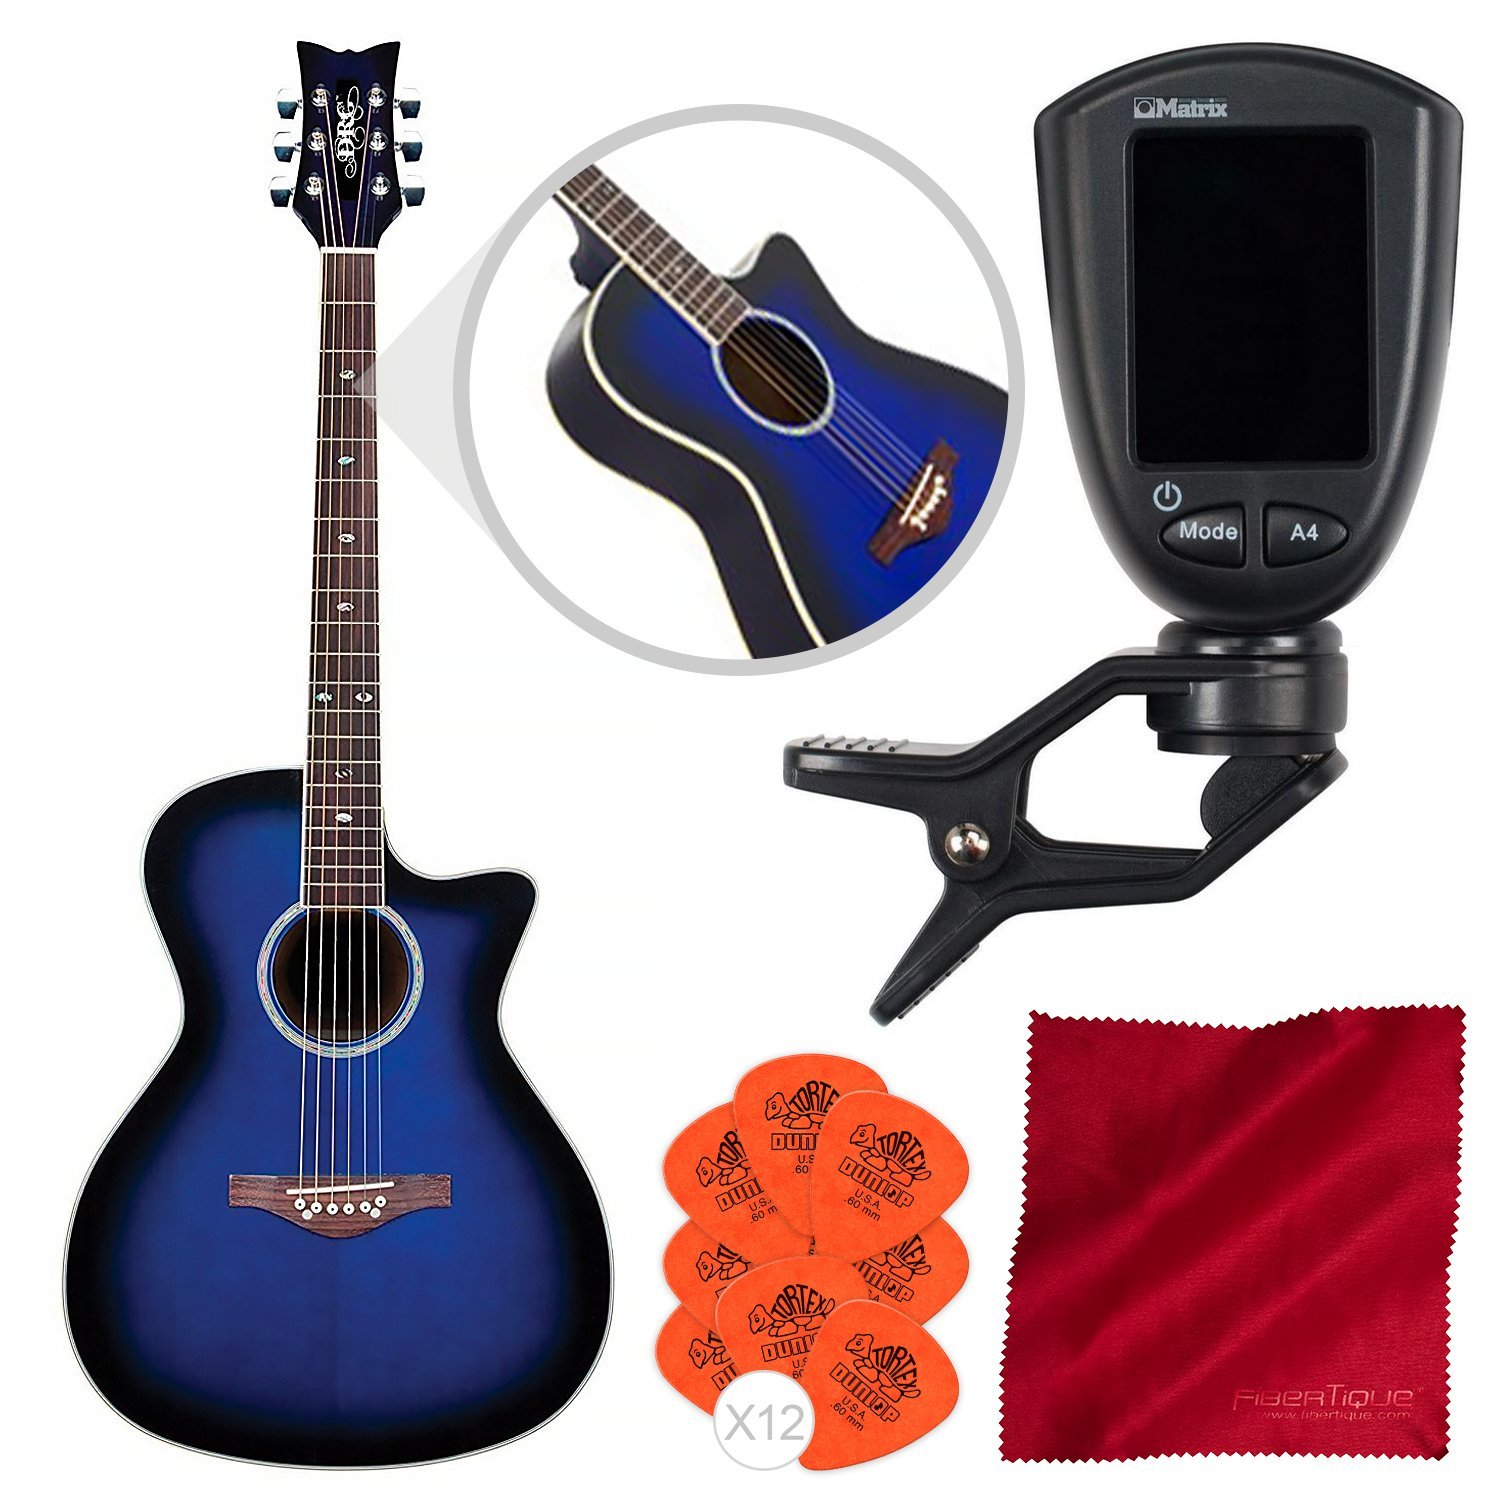 Daisy Rock Wildwood Artist Acoustic-Electric Guitar (Royal Blue Burst) with Guitar Tuner, Picks, and Cleaning Cloth by Daisy Rock - Photo Savings